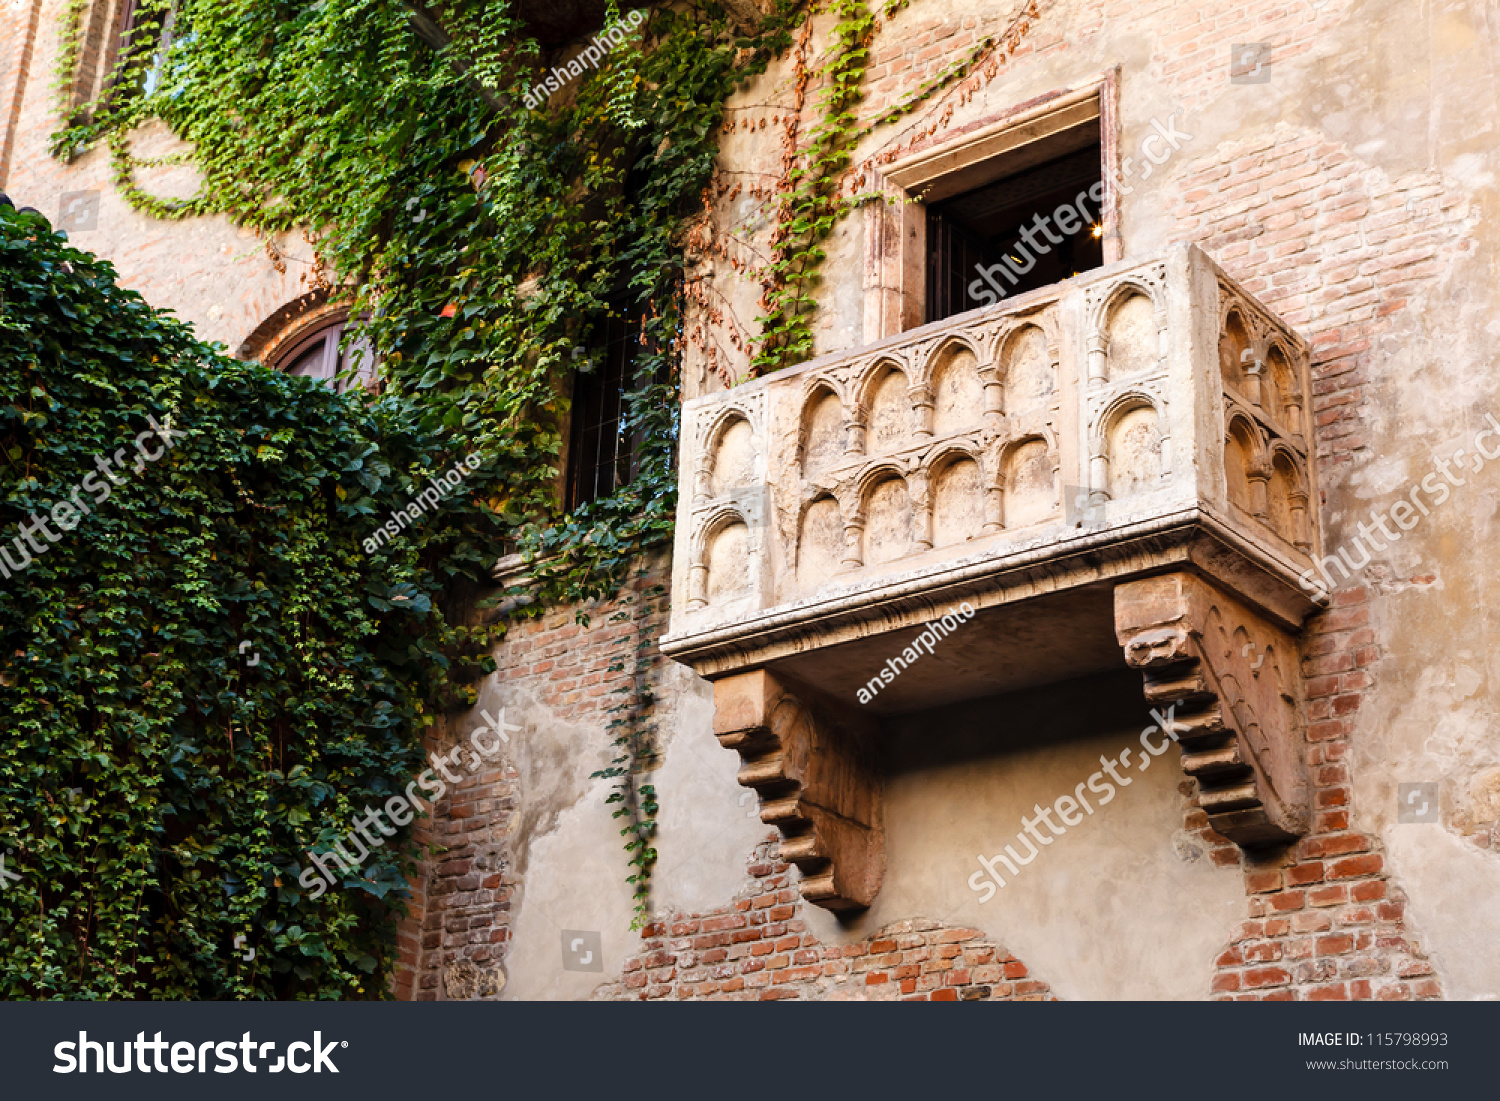 Famous balcony juliet capulet home verona stock photo for Famous balcony